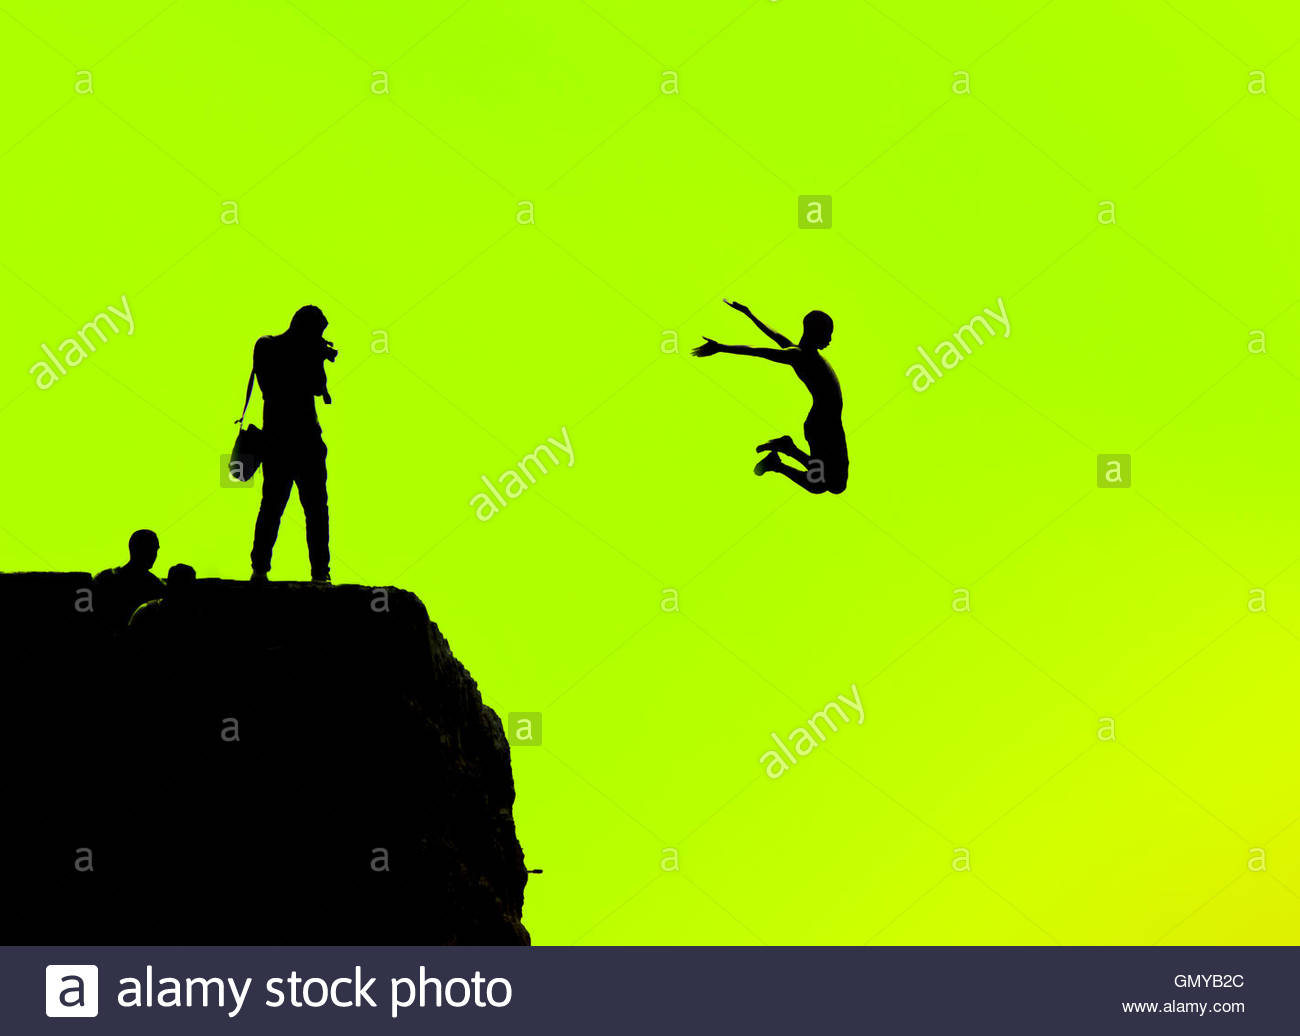 1300x1036 Silhouette Of A Man Jumping Off A Cliff On A Green Background